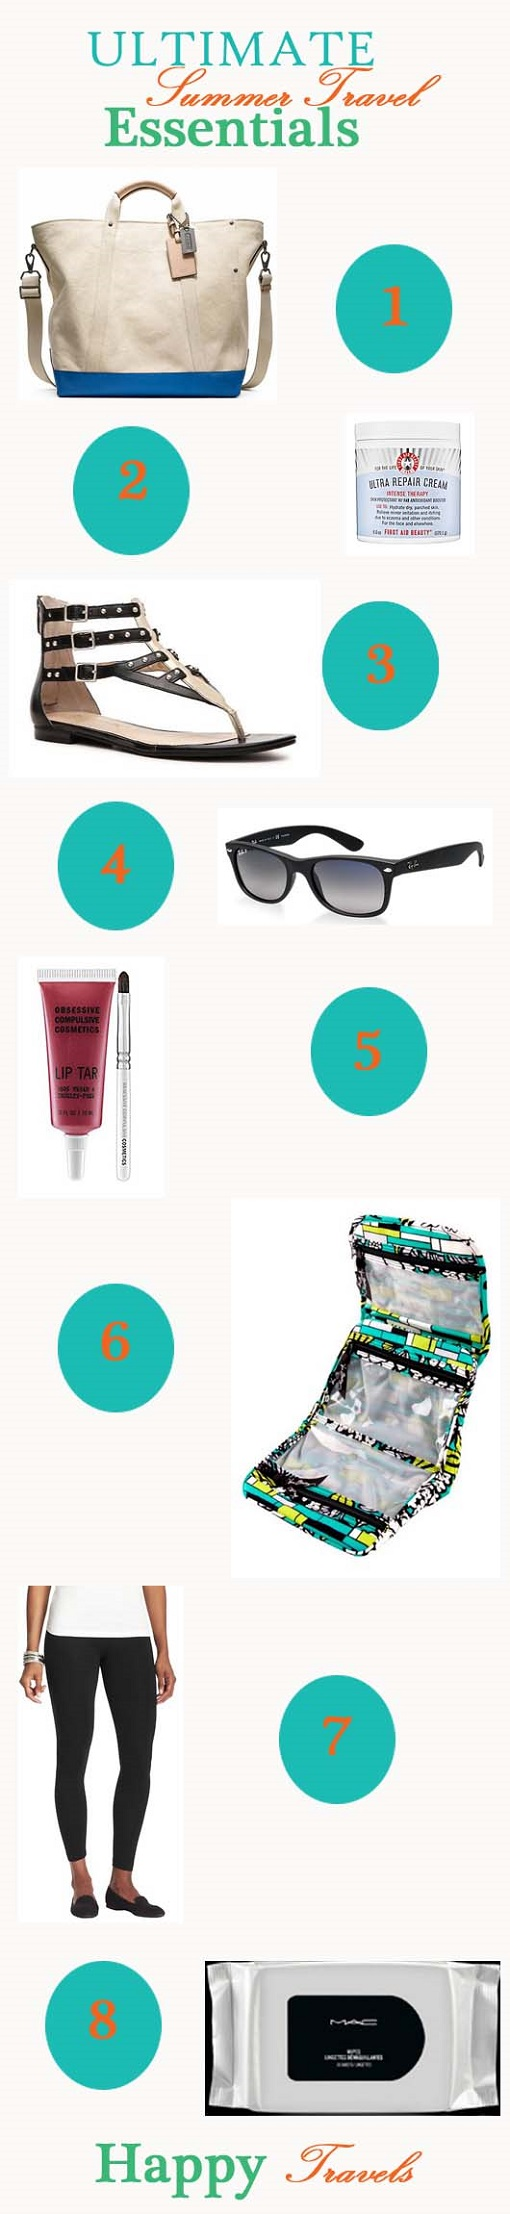 Ultimate Summer Travel Essentials 510